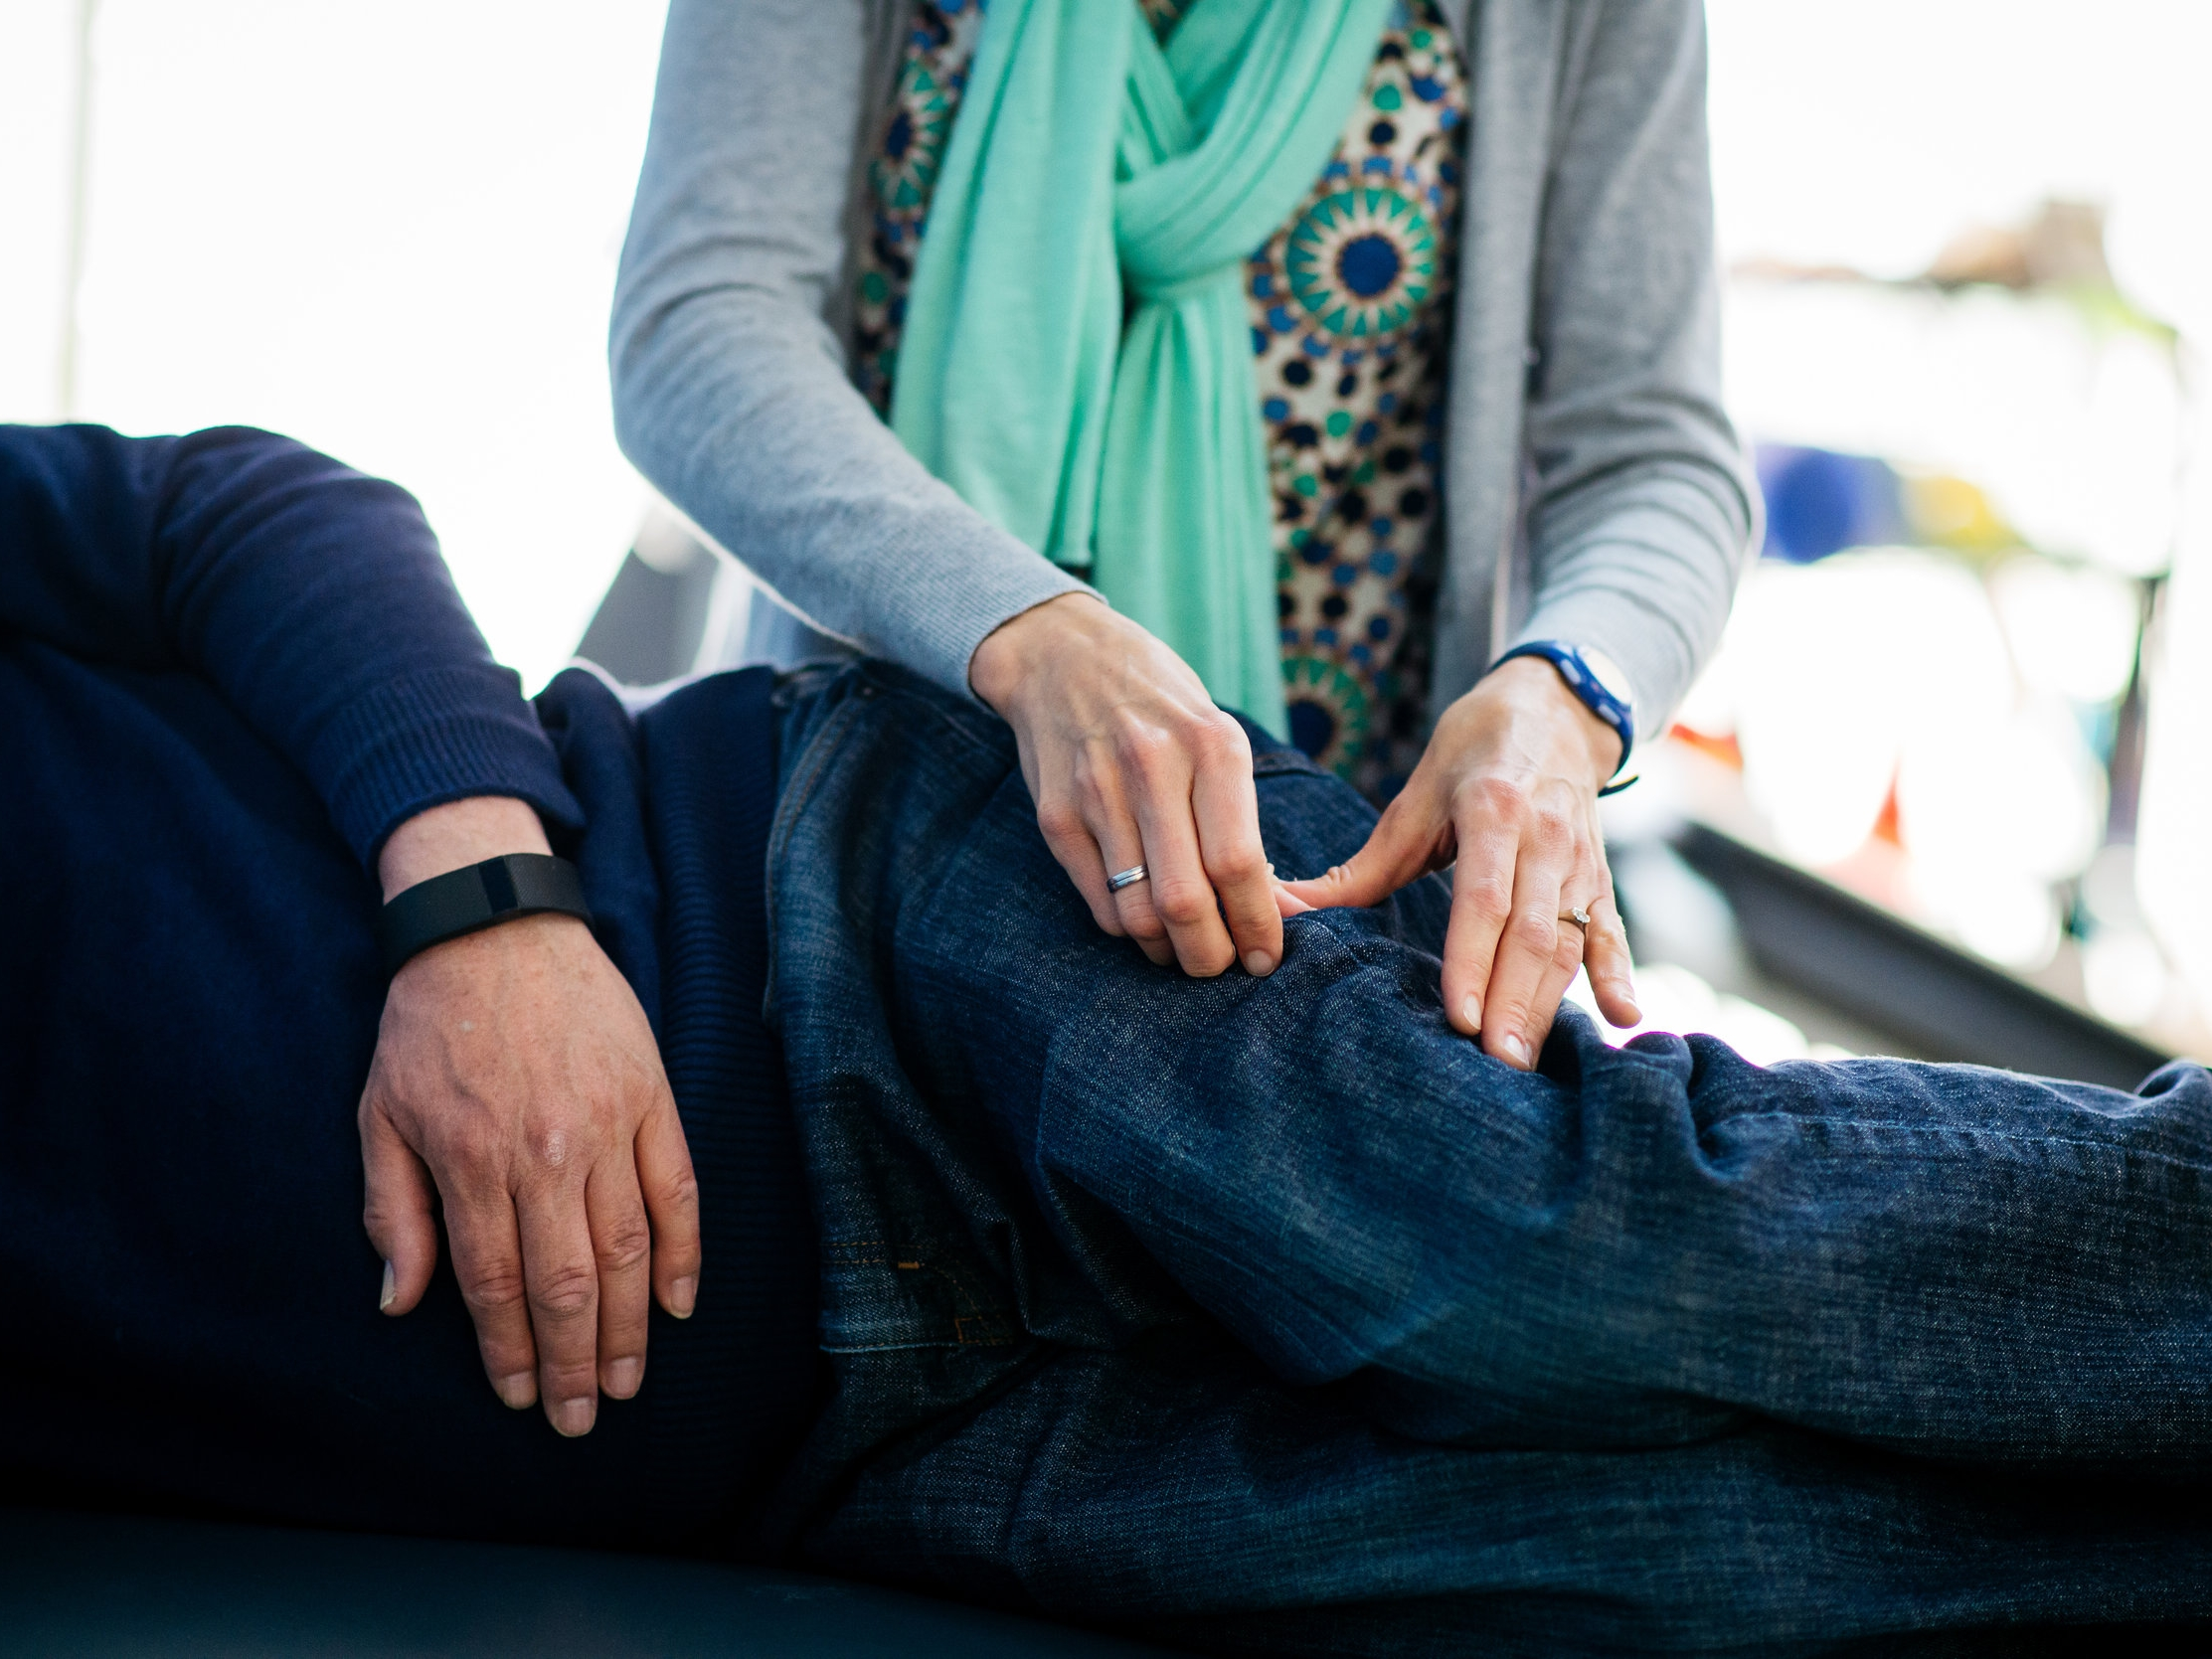 Langford Sports & Physical Therapy hip pain and injury